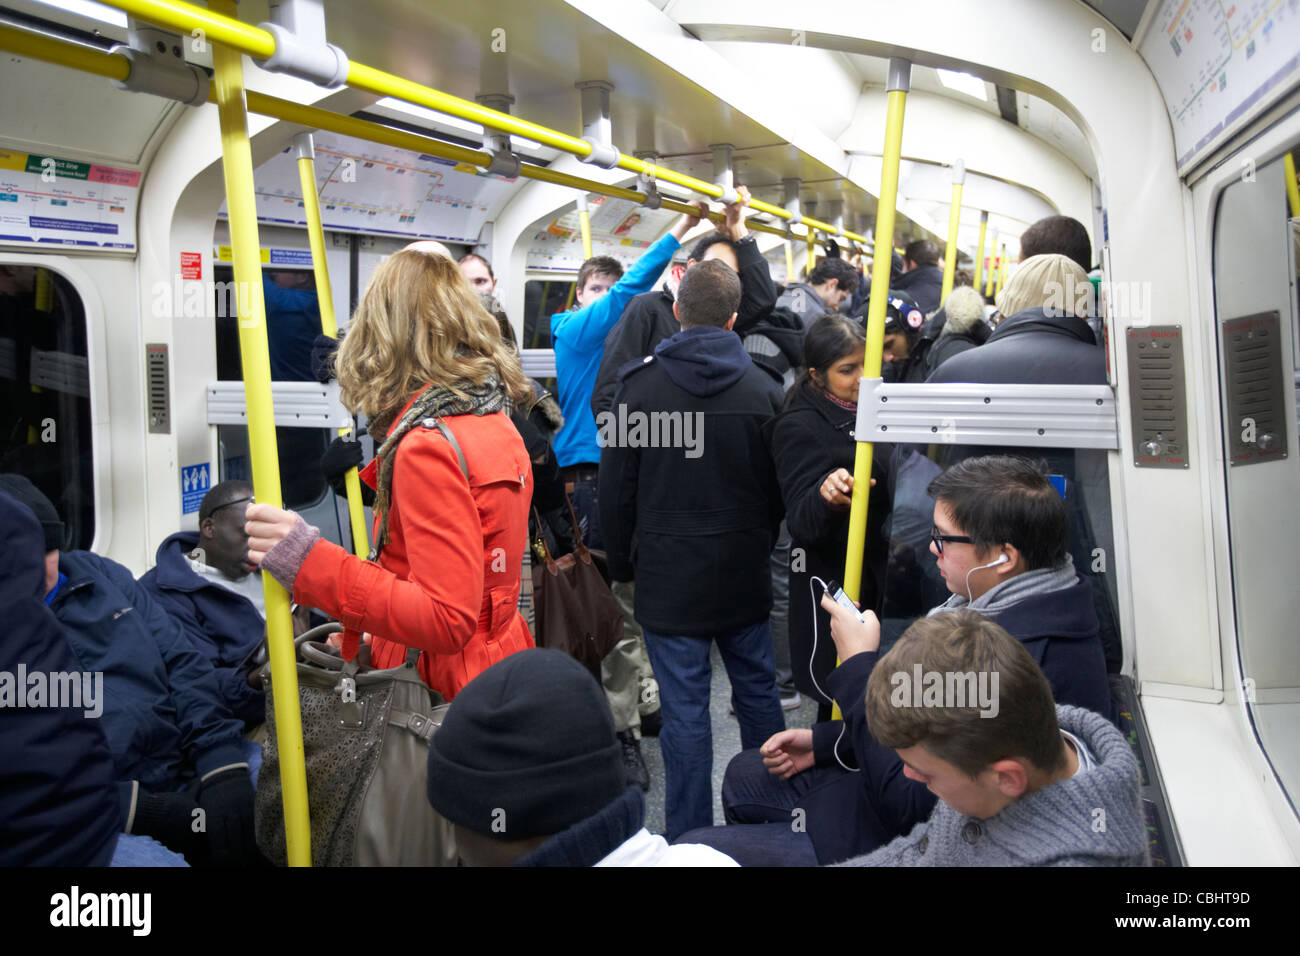 girl with red coat standing on busy tube train surrounded by people on london underground england united kingdom - Stock Image